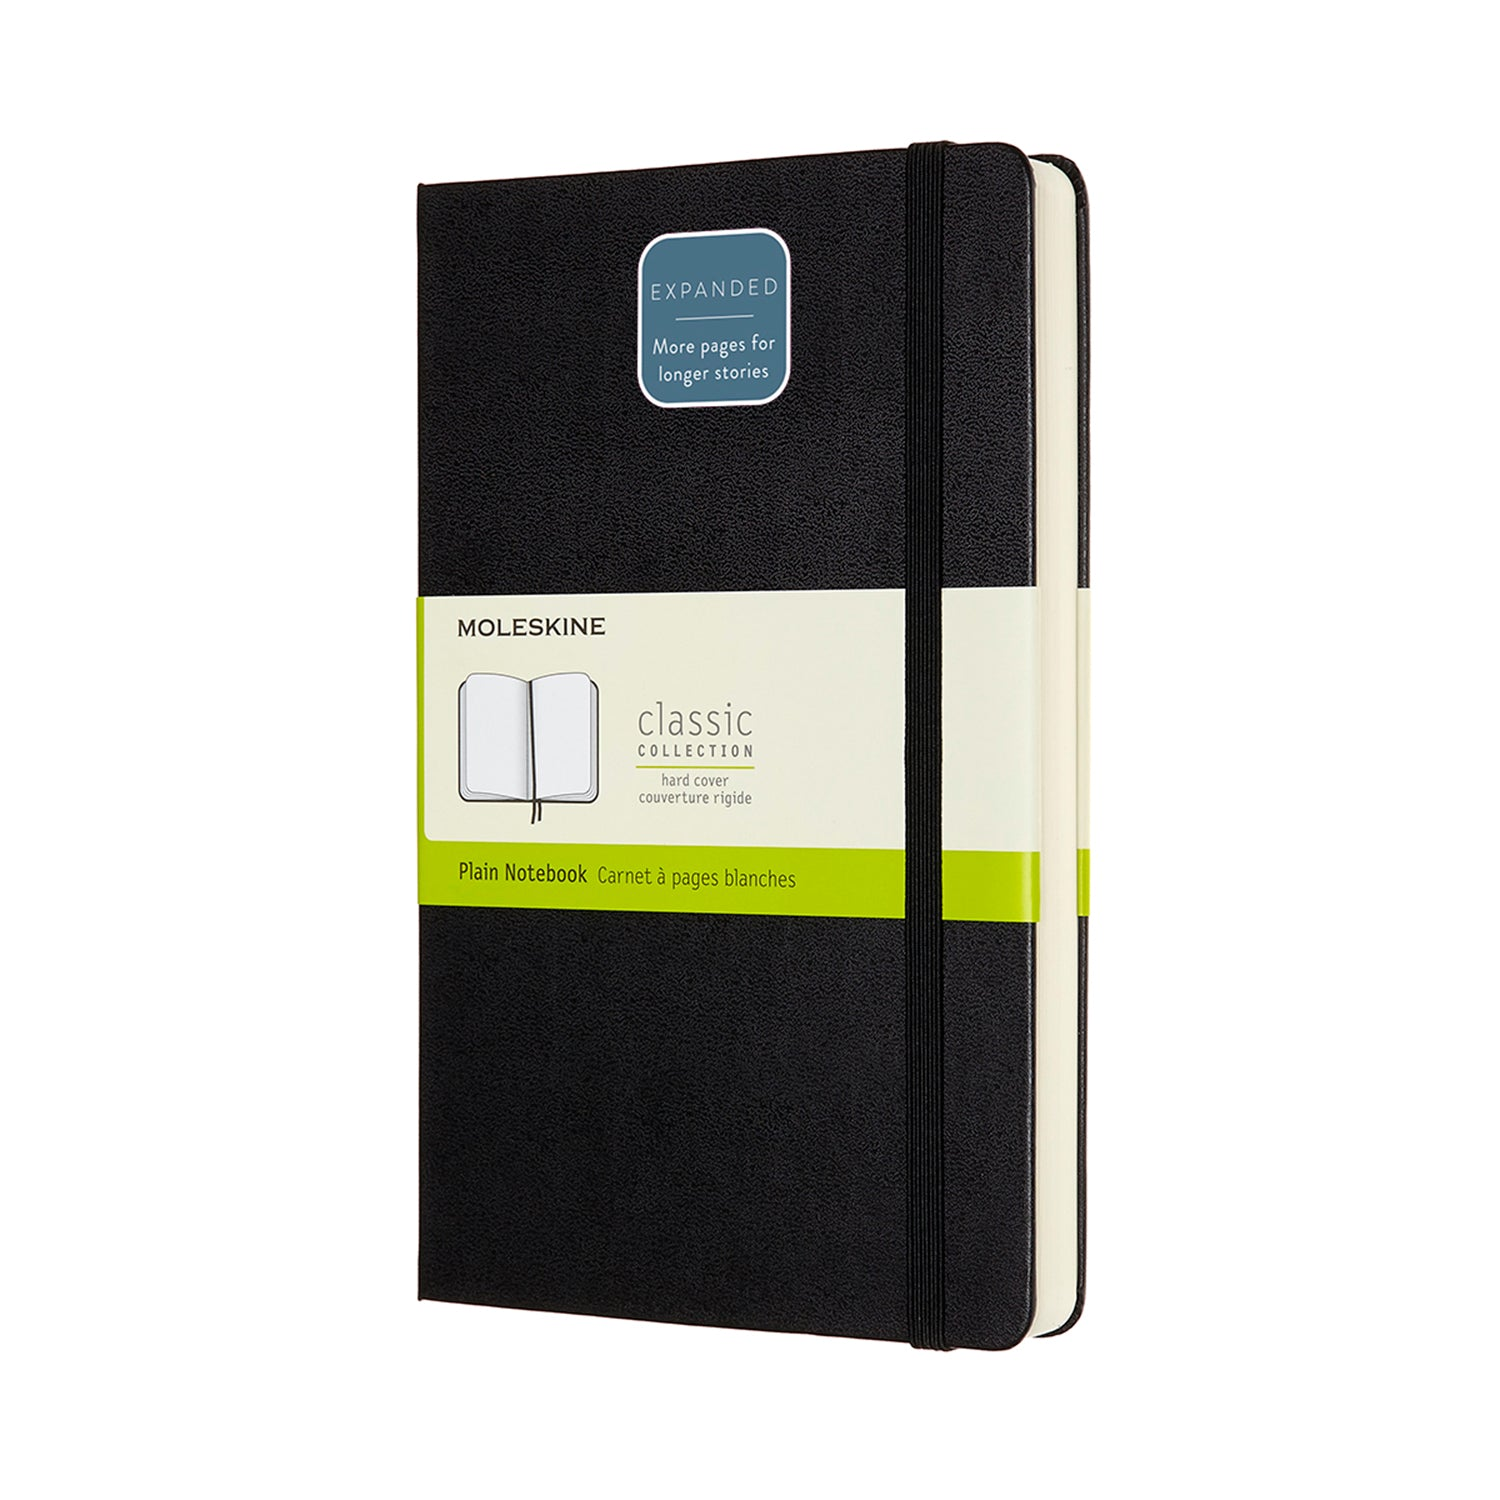 Moleskine Classic Notebook - Expanded Version - Plain Pages